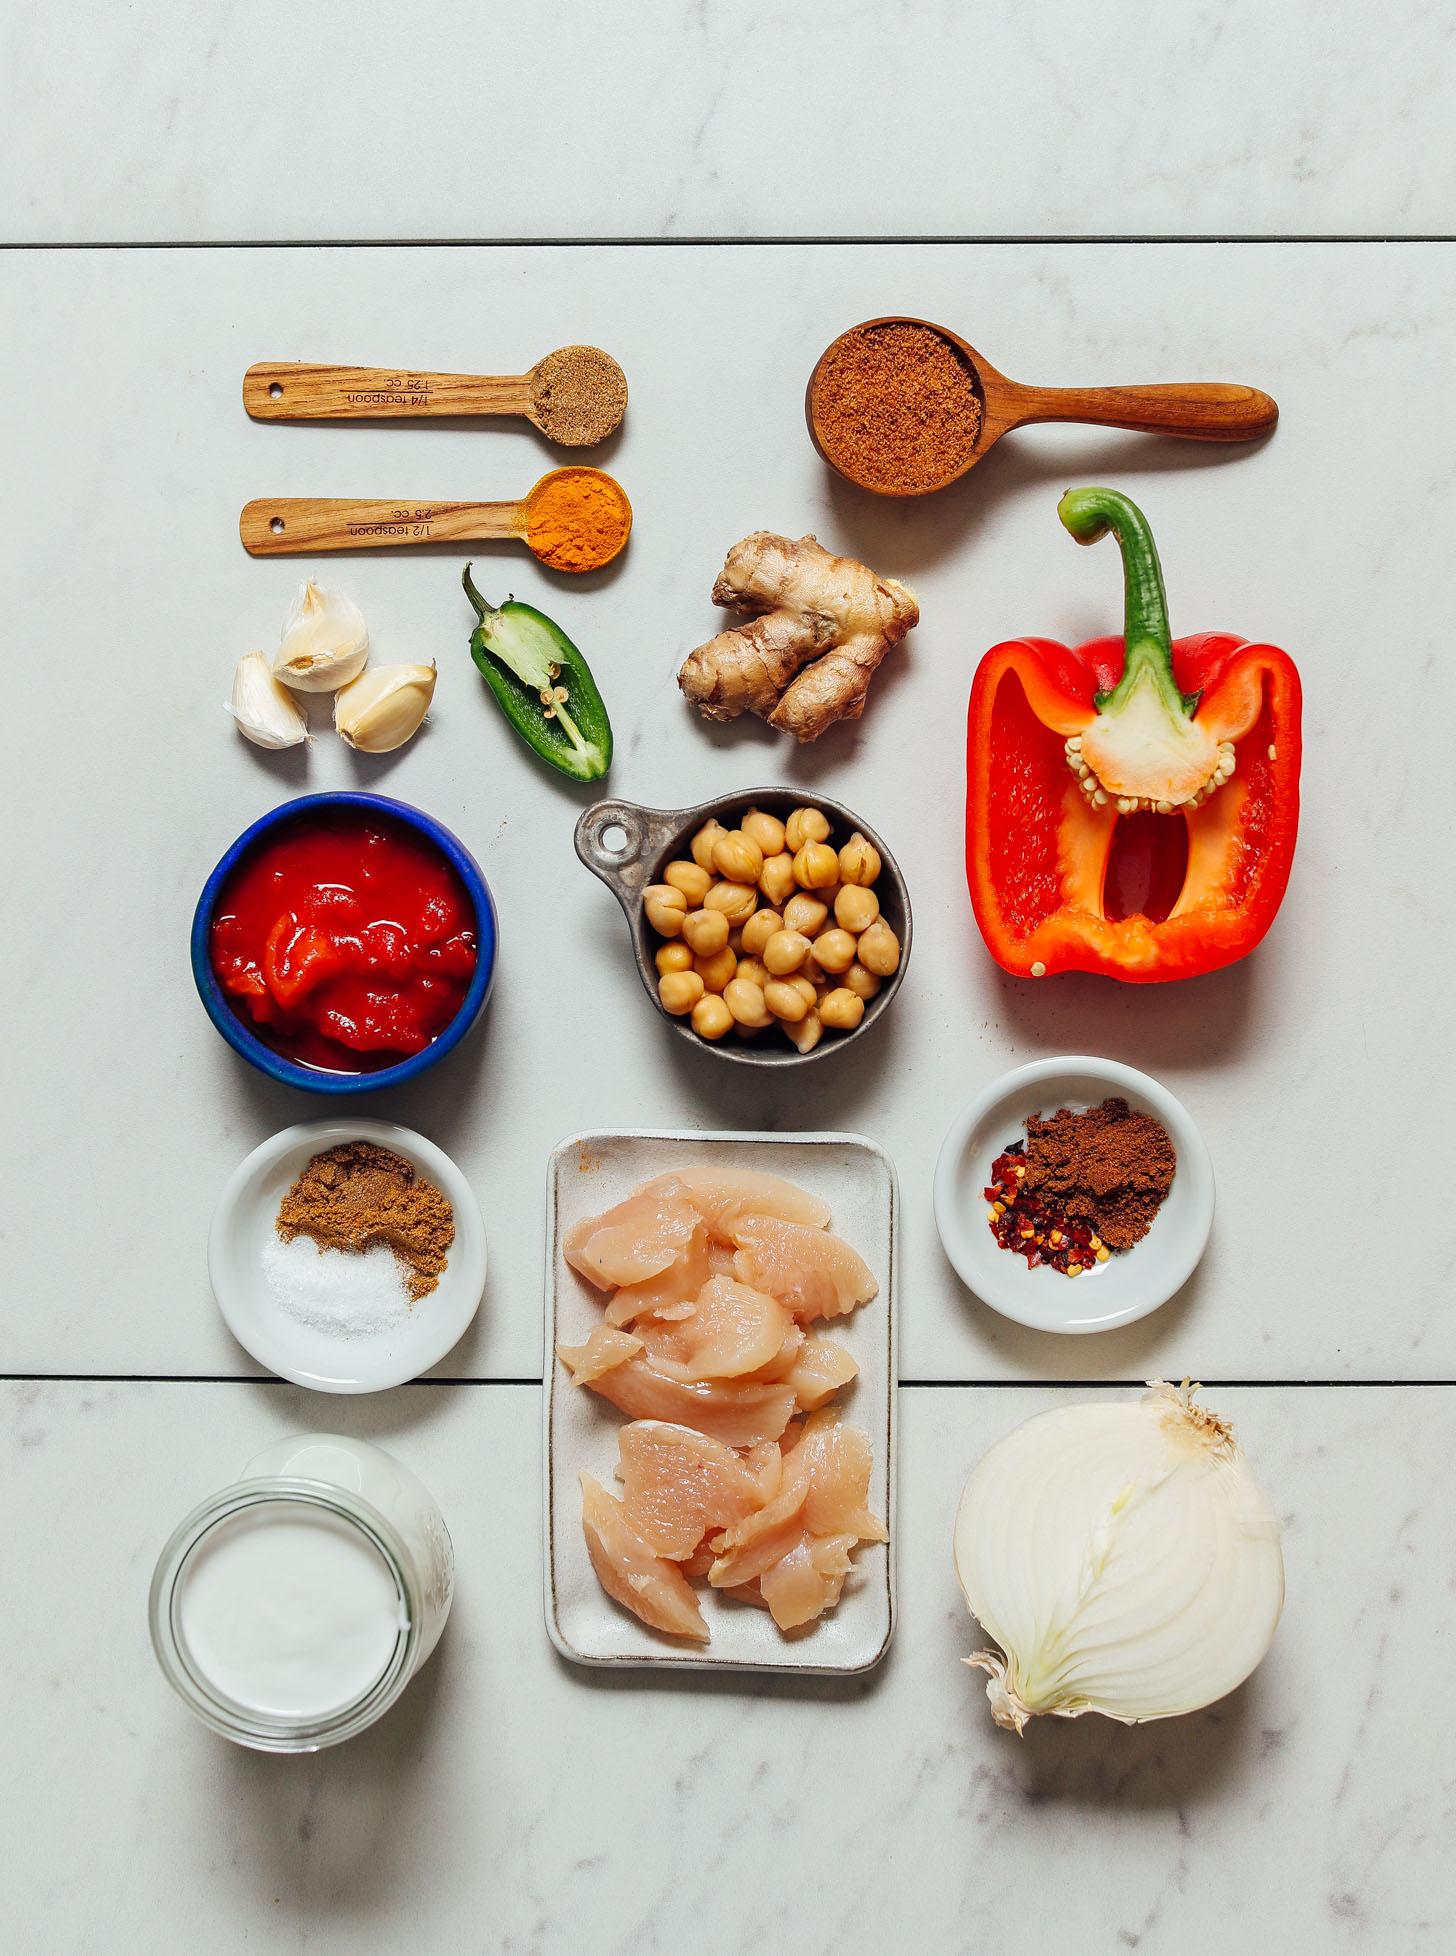 Chickpeas, chicken, bell pepper, onion, spices, and other ingredients for making our 1-Pot Tikka Masala recipe